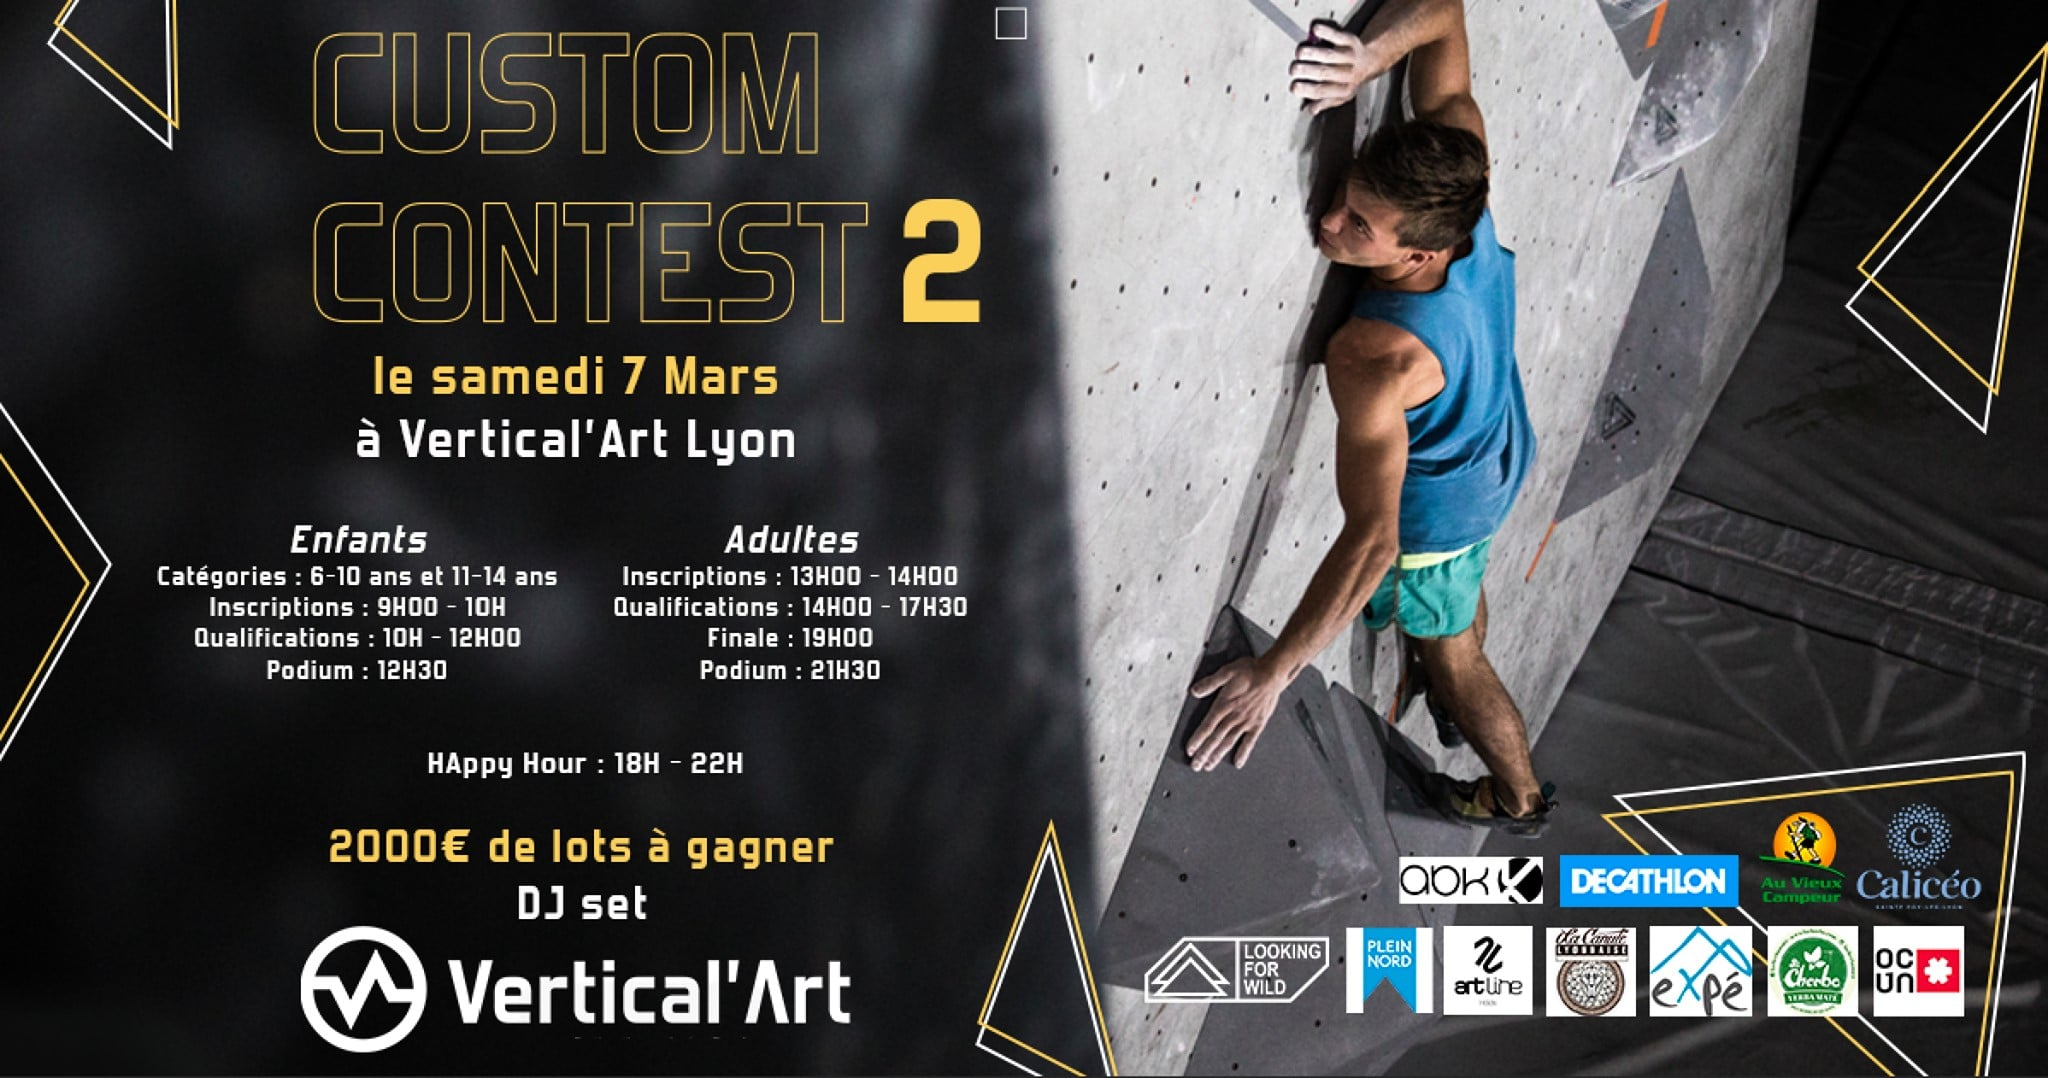 Contest d'escalade de Bloc- Vertical'art Lyon- Salle d'escalade de bloc- Salle d'escalade Lyonnaise- Contest d'escalade- Enfants adultes - Salle de restauration et d'escalade - Bar/Restaurant Vertical'Art Lyon